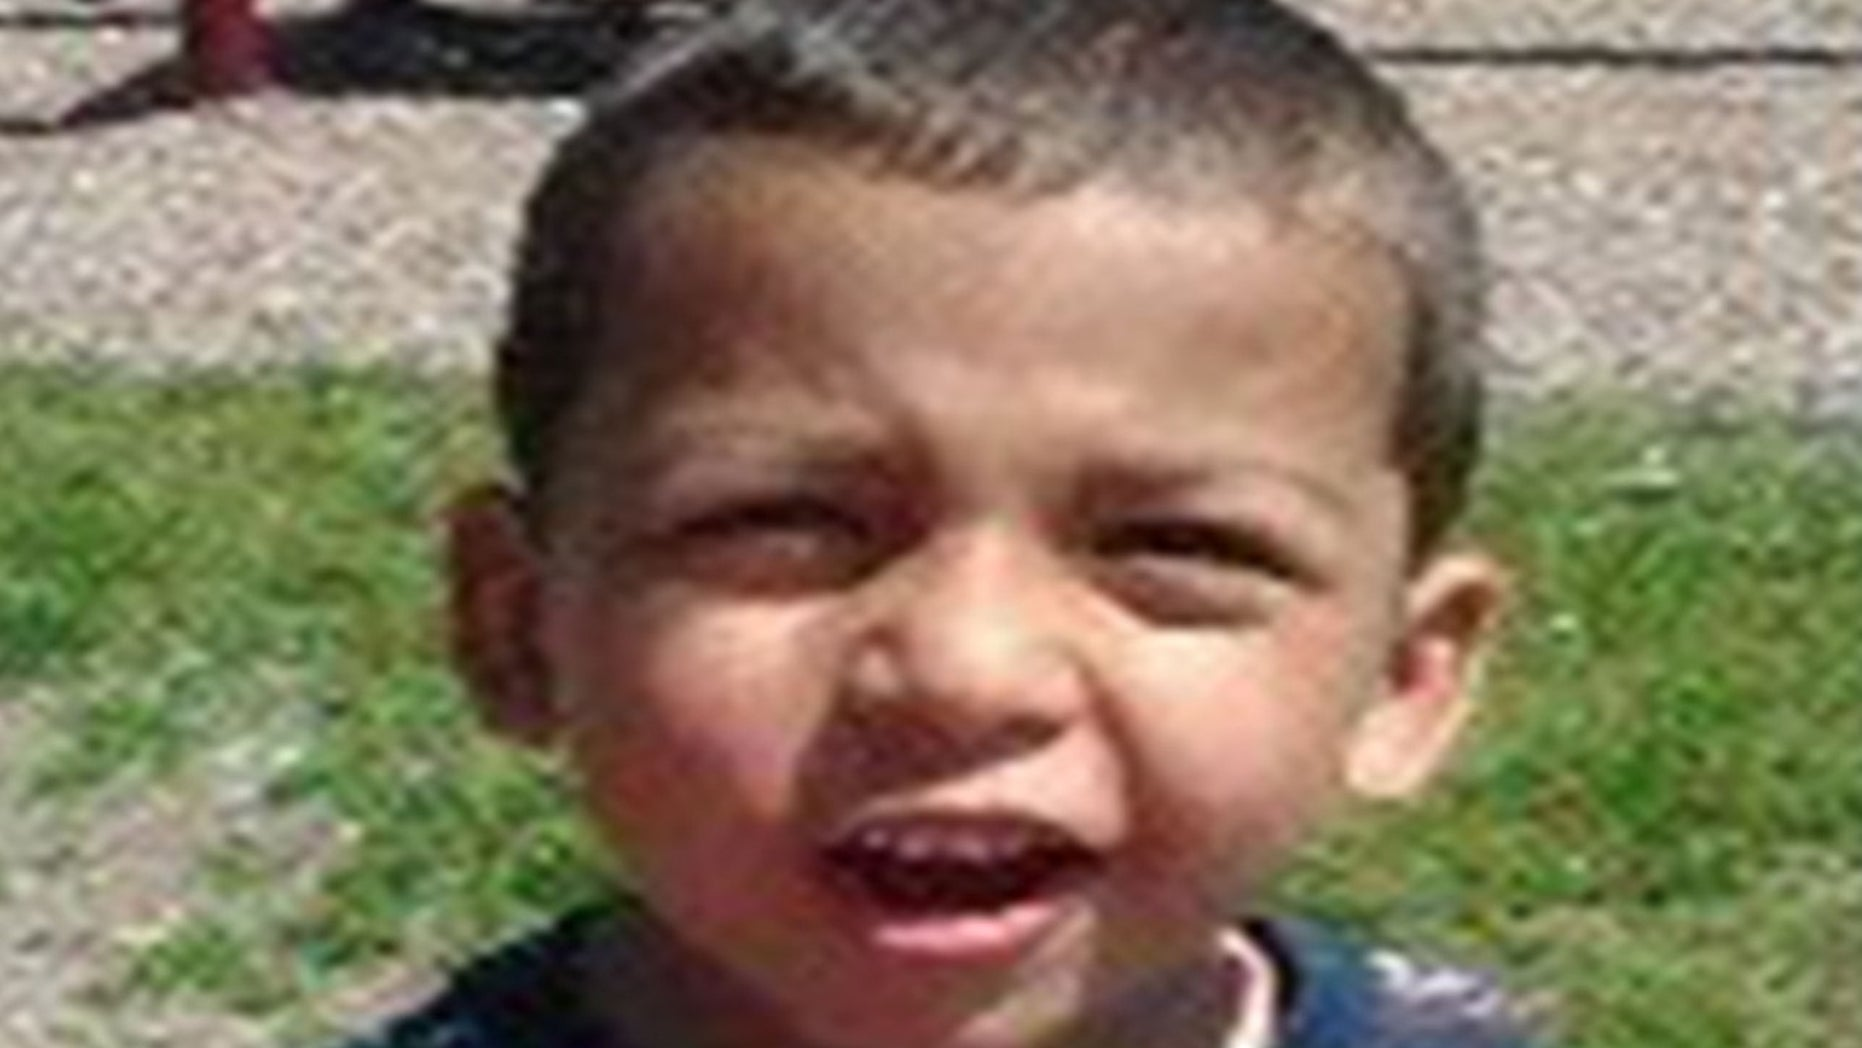 Jeremiah Oliver, 5, was found in a suitcase along the side of a Massachusetts highway in April 2014 after going missing in Sept. 2013.